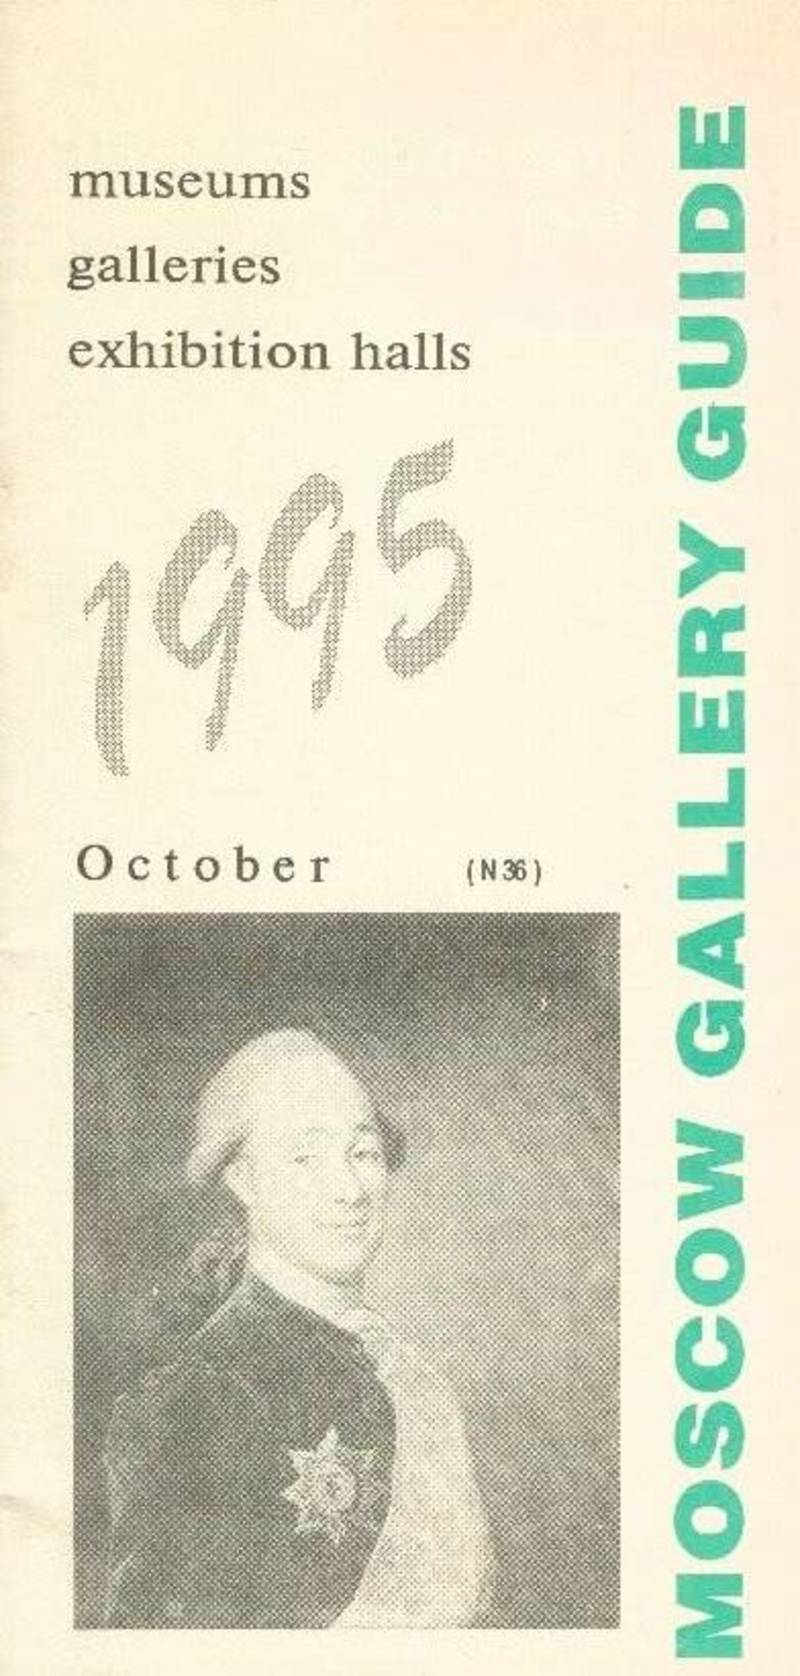 Moscow gallery guide. October 1995